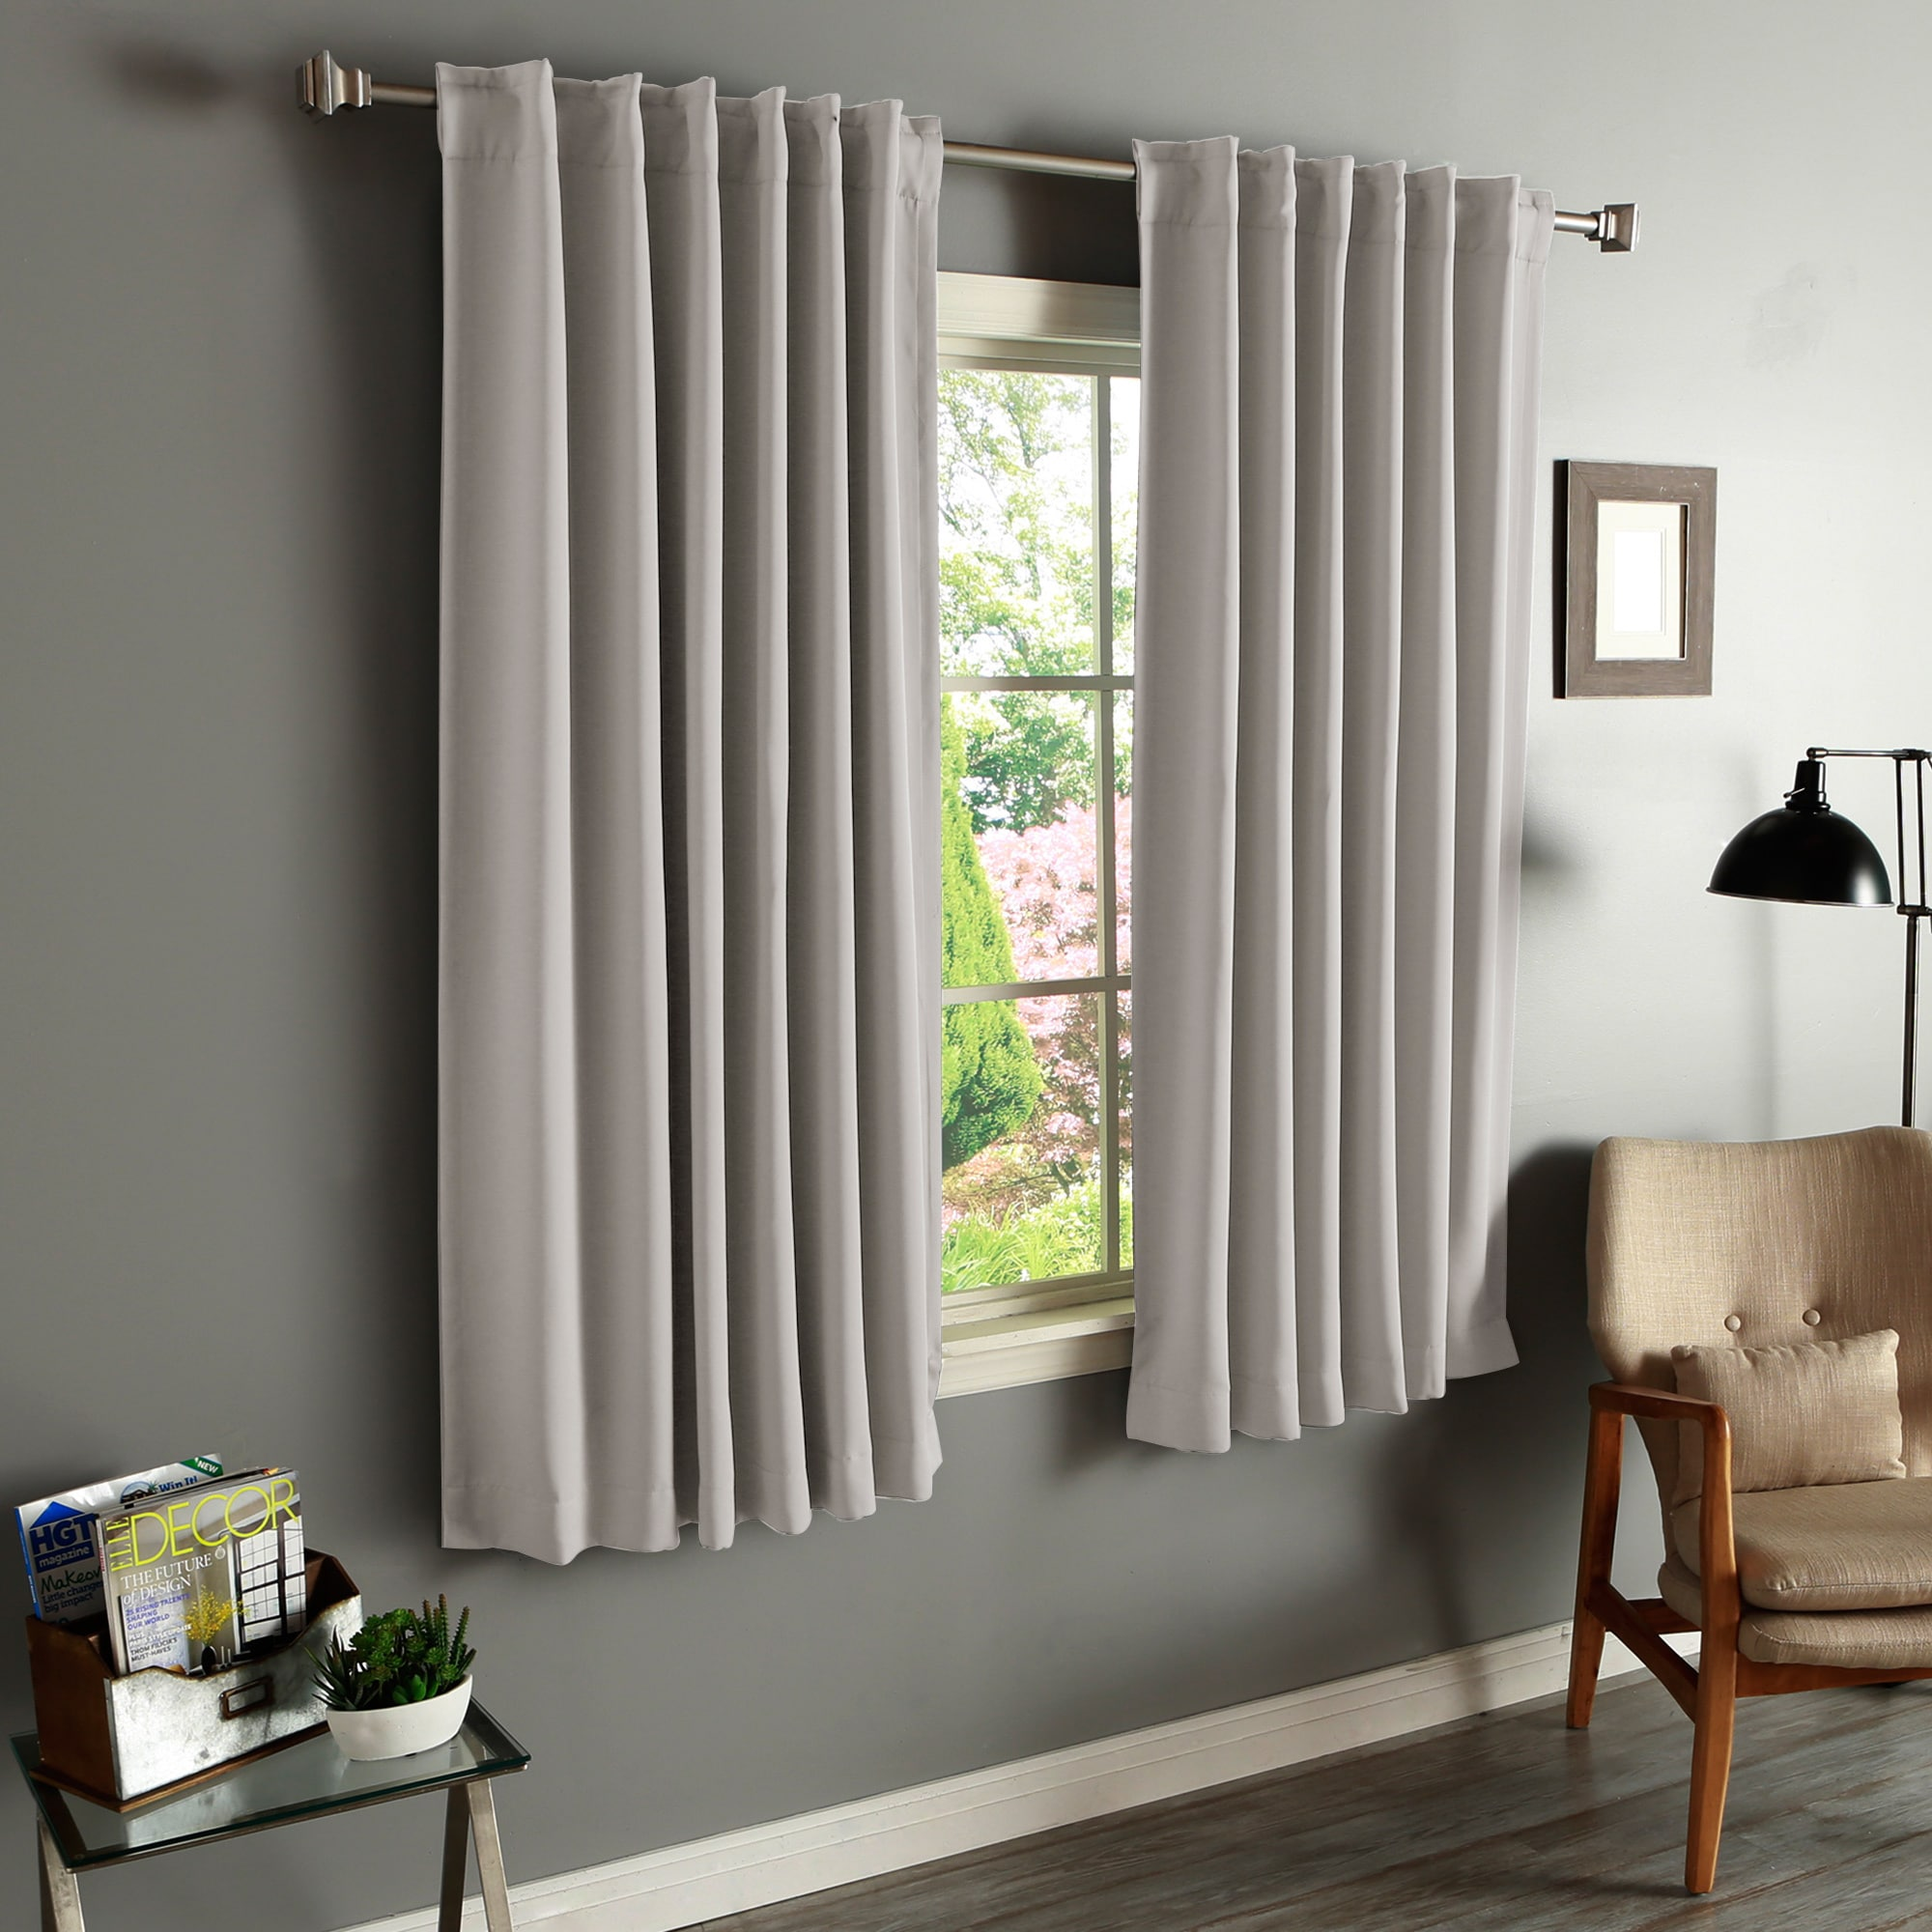 solid pin forrester panels waterfall panel pocket curtain rod sheer